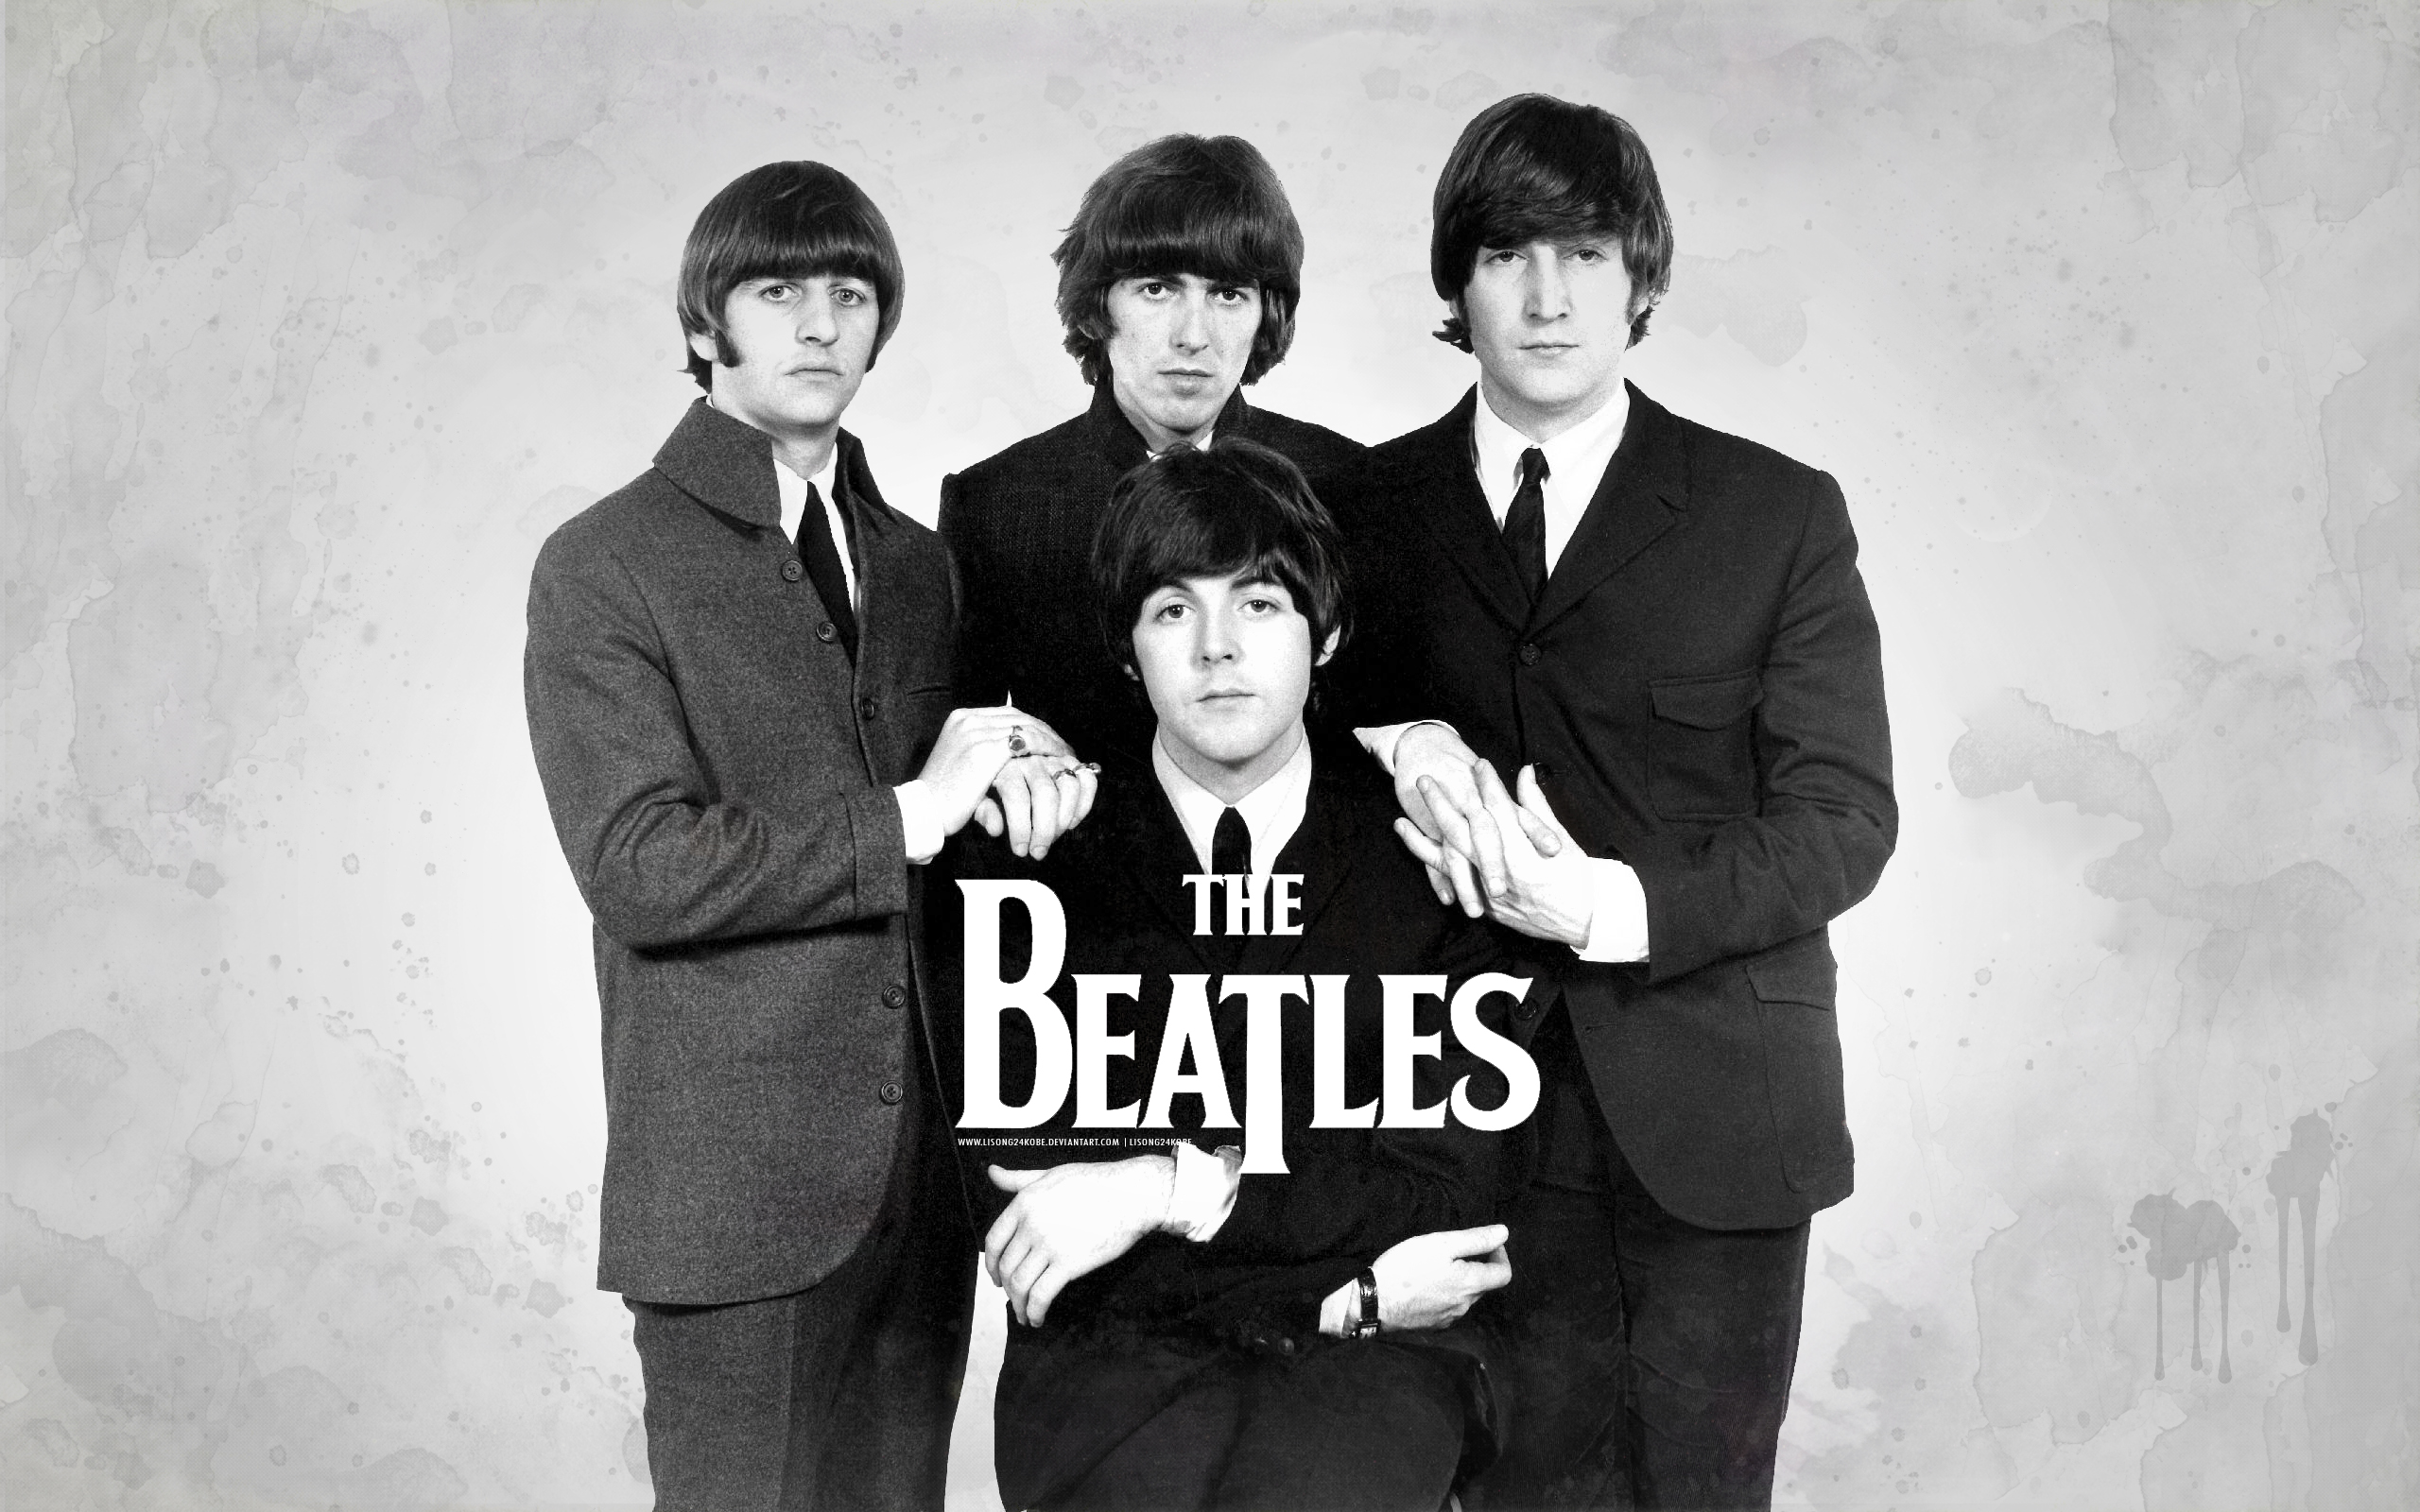 the beatles let it bethe beatles help, the beatles yesterday, the beatles let it be, the beatles yellow submarine, the beatles girl, the beatles альбомы, the beatles hey jude, the beatles слушать, the beatles abbey road, the beatles скачать, the beatles песни, the beatles come together, the beatles michelle, the beatles hallelujah, the beatles перевод, the beatles yesterday скачать, the beatles and i love her, the beatles revolver, the beatles imagine, the beatles something